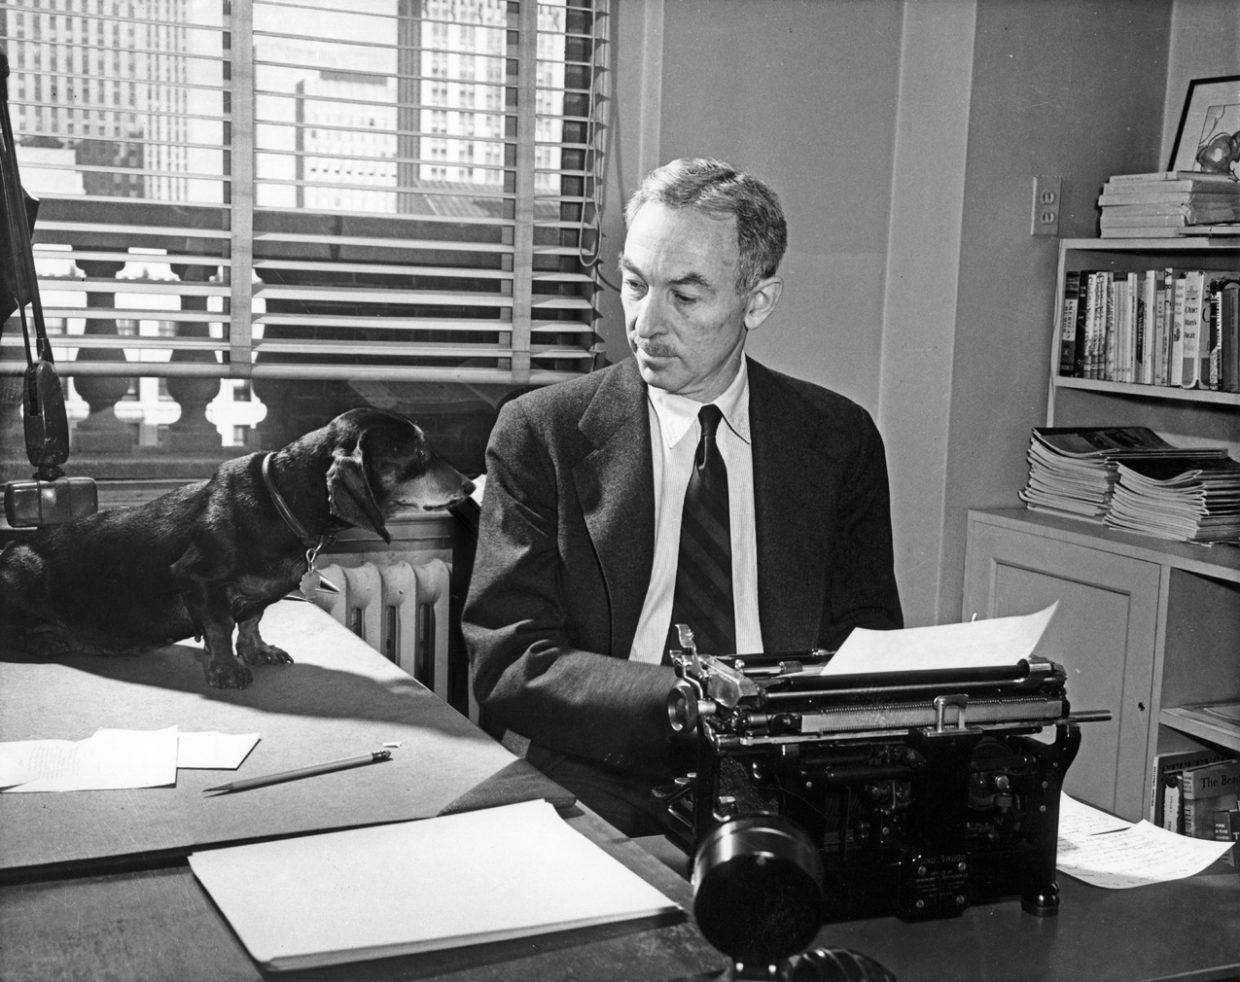 E.B. White dog office